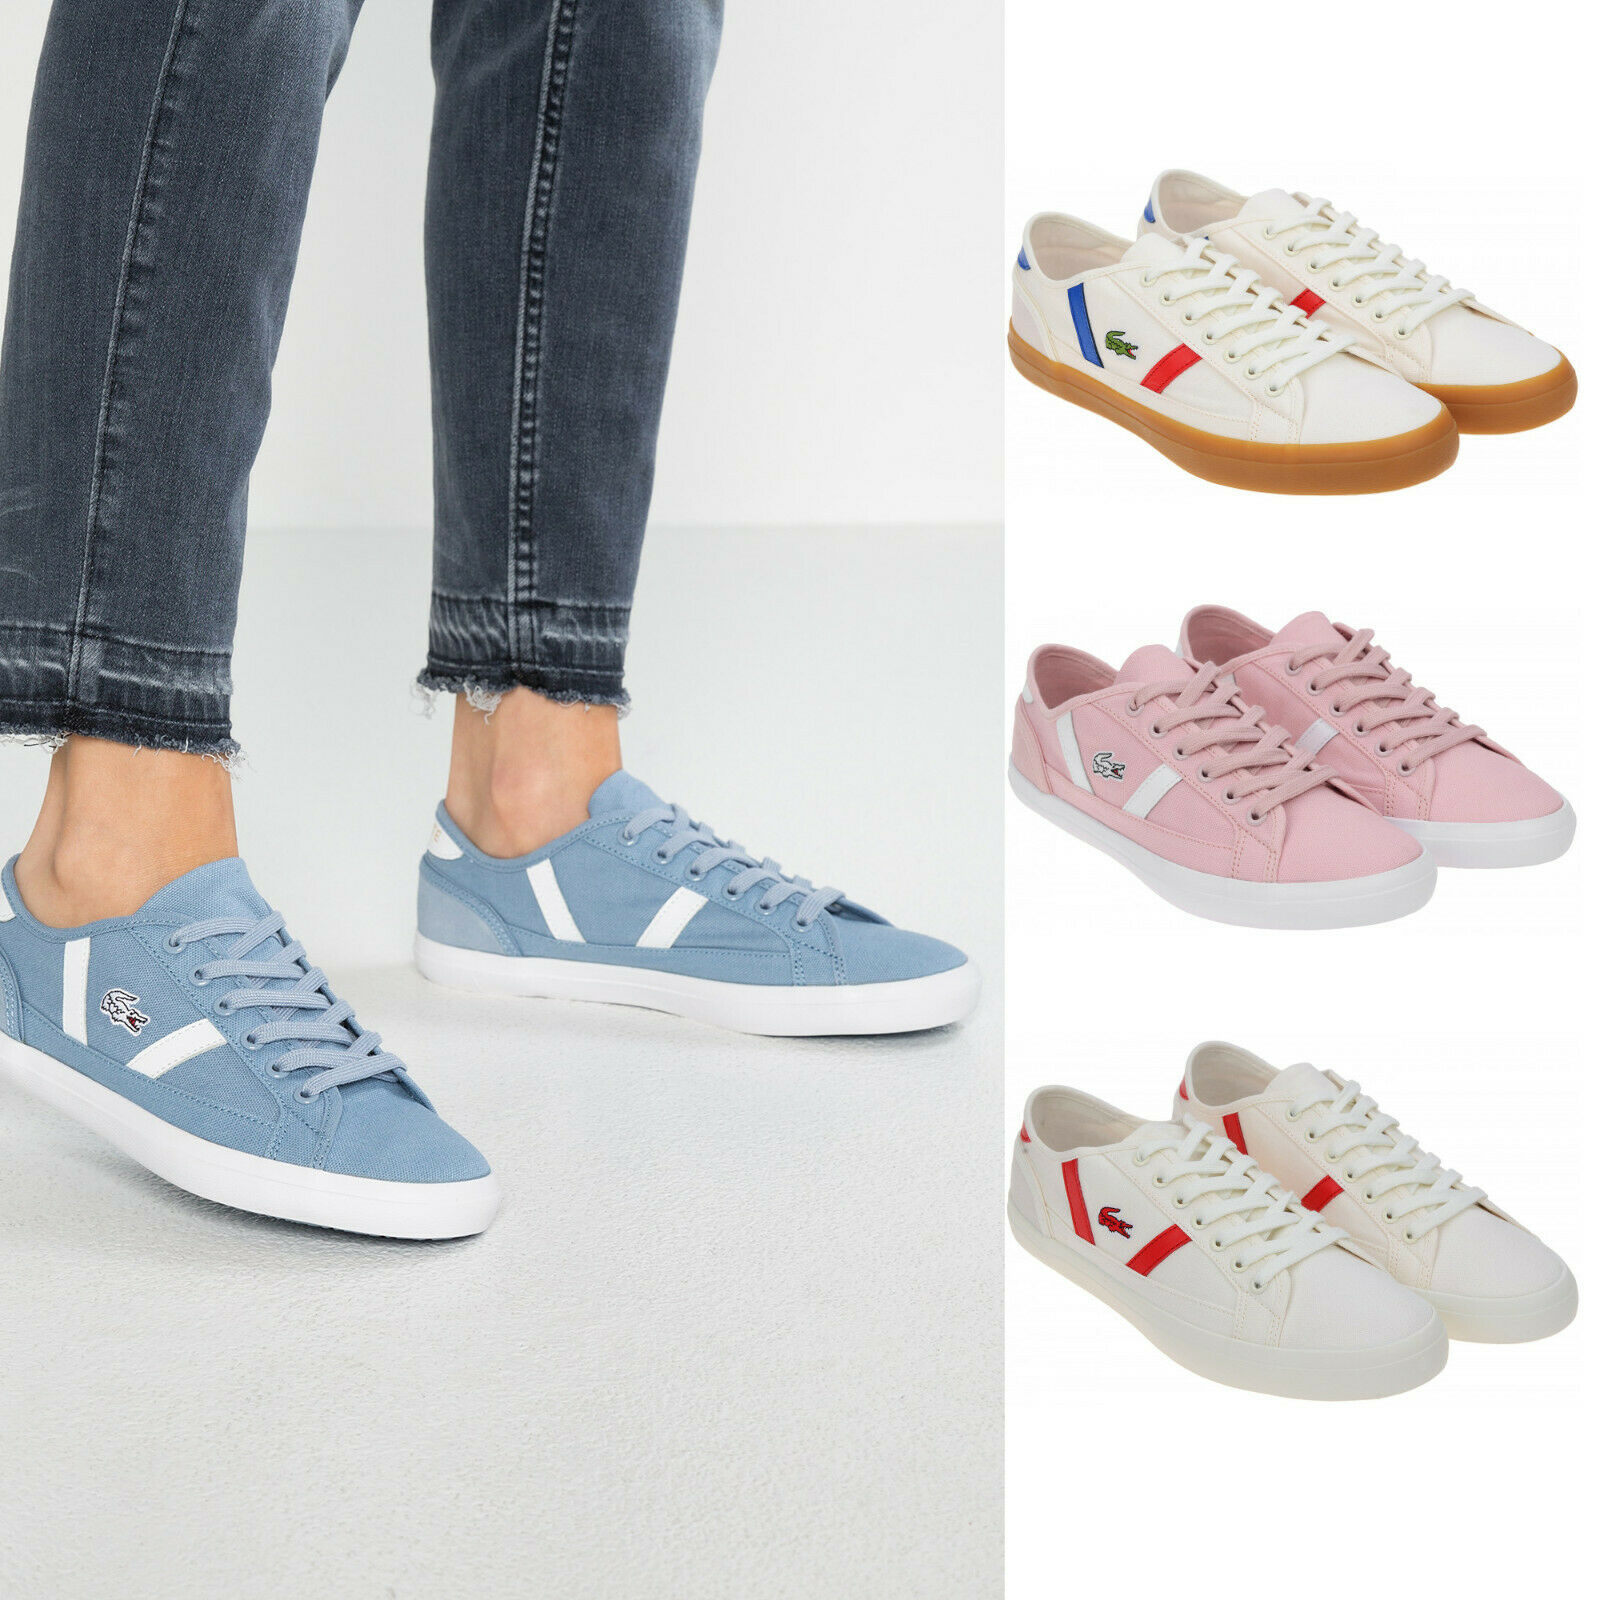 Womens Lacoste shoes Sideline Canvas Fashion Sneakers Pick color & Size NEW